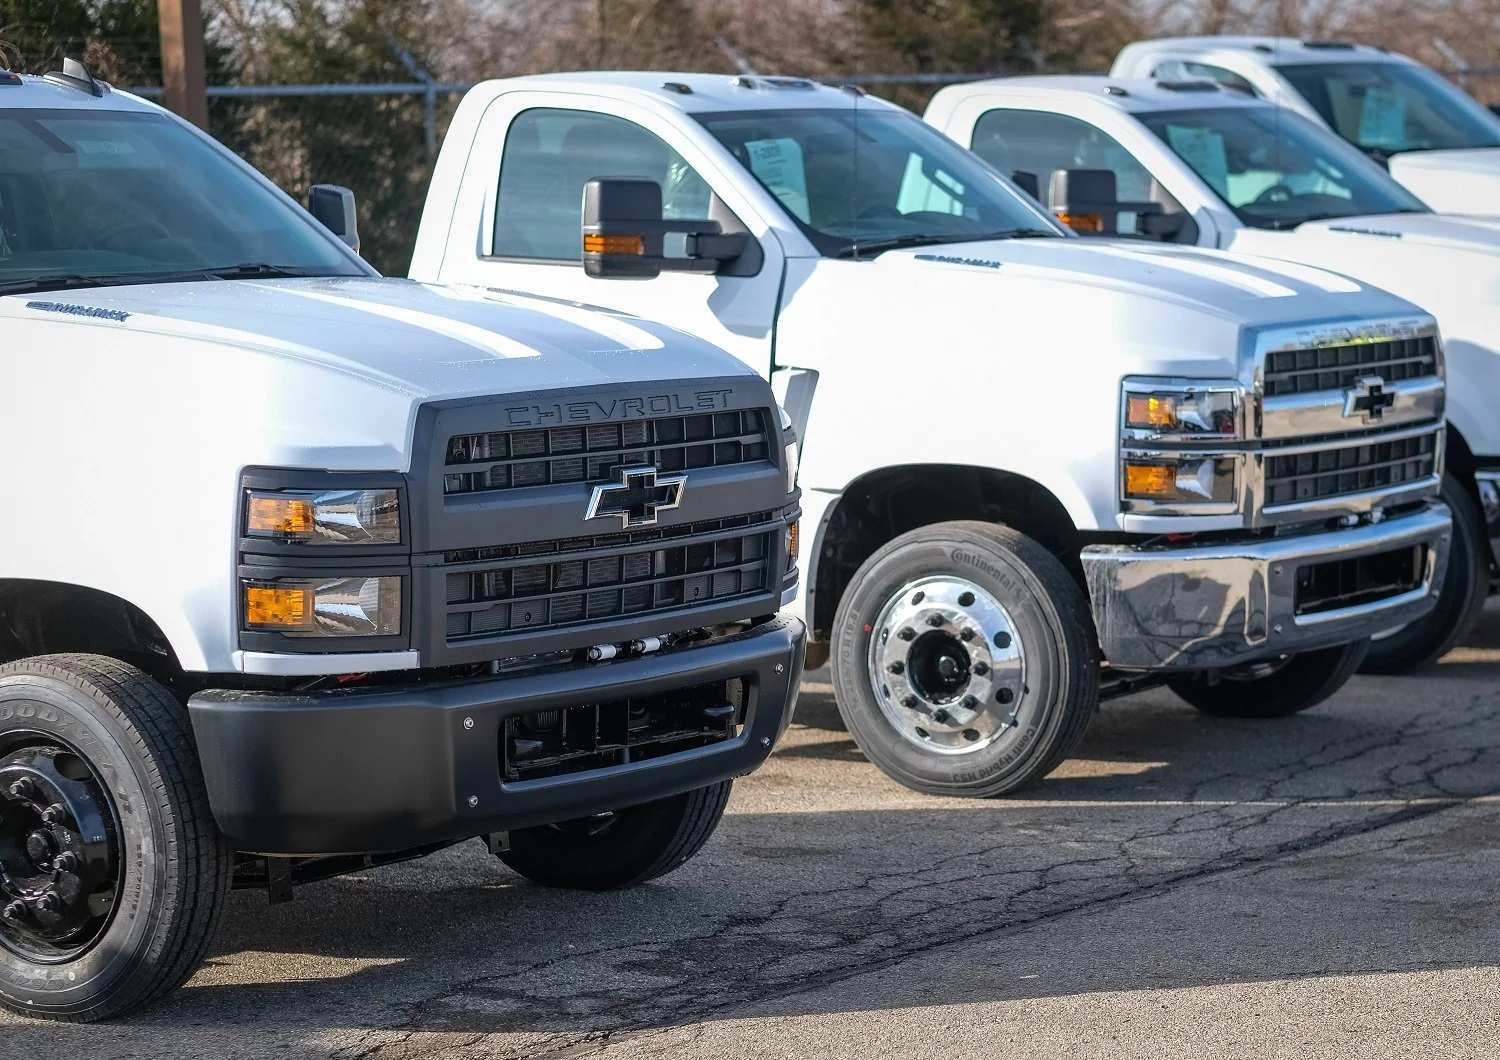 19 Great 2019 Chevrolet 5500 Truck Images by 2019 Chevrolet 5500 Truck